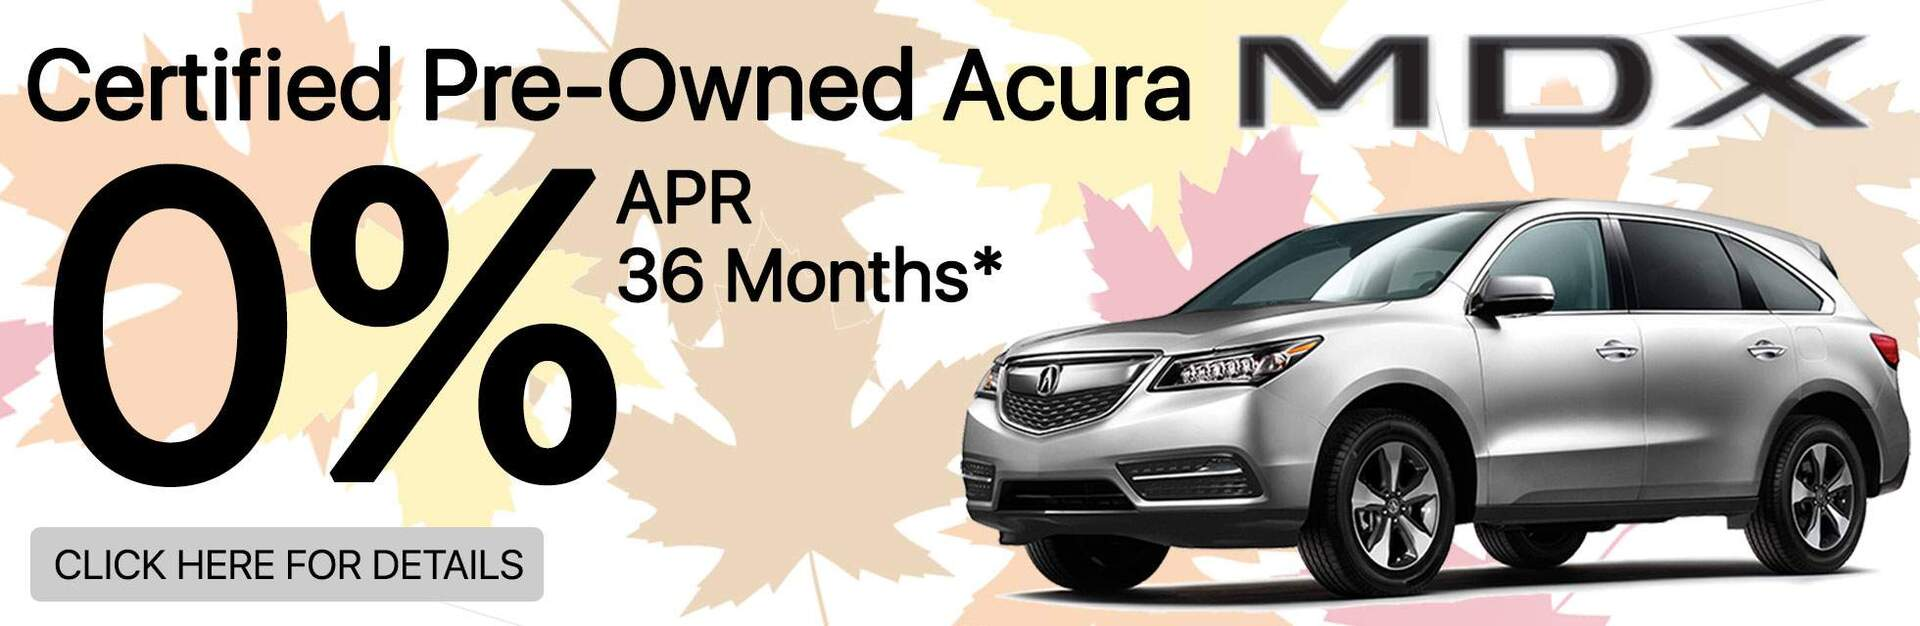 Certified Acura MDX